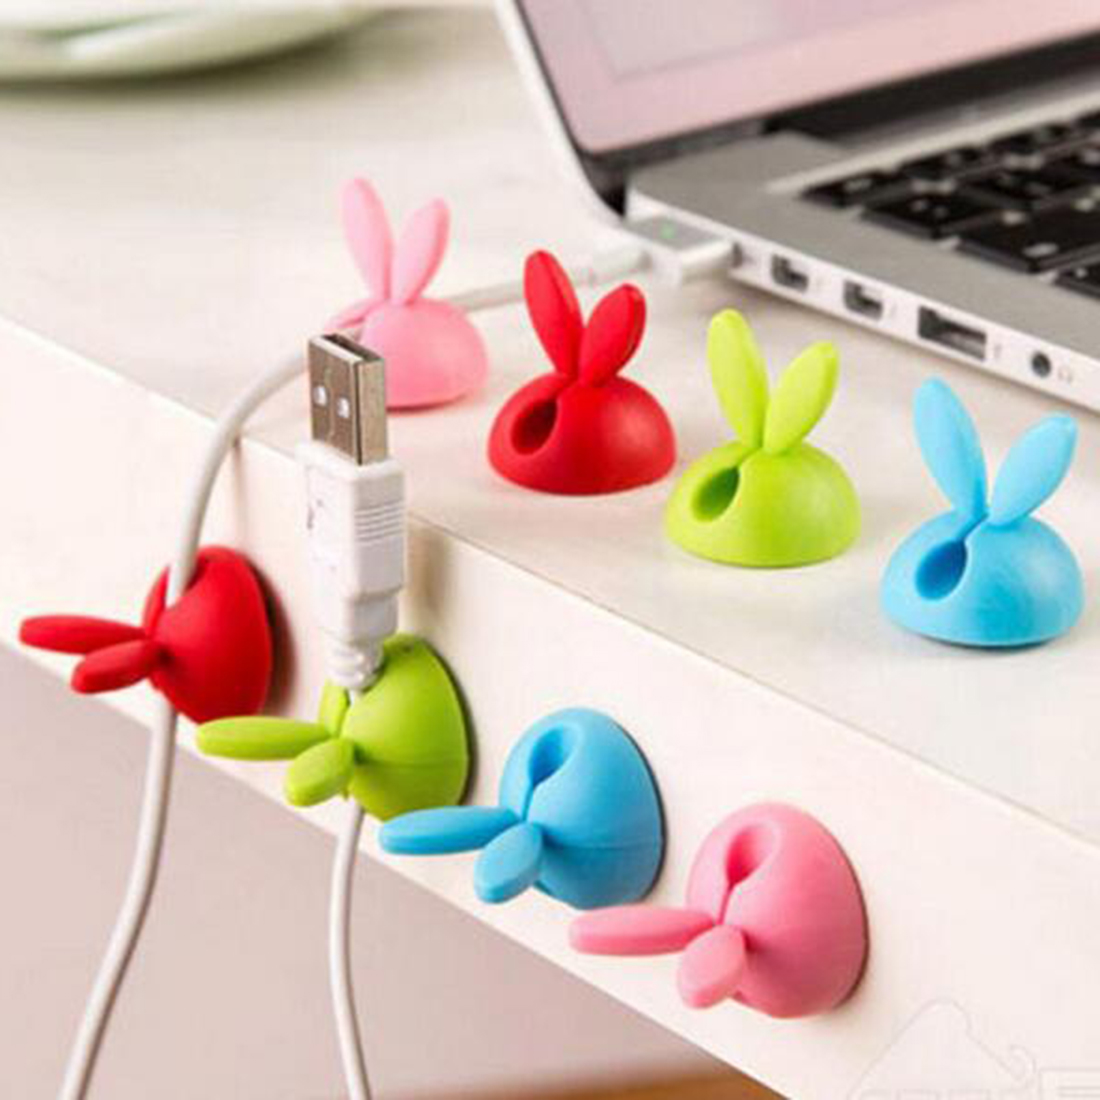 Consumer Electronics Faithful Marsnaska 4pcs Bunny Ear Rabbit Cable Clips Cord Ties Holder Cable Fastener Desk Tidy Organiser Wire Cord Usb Charger Holder Relieving Rheumatism